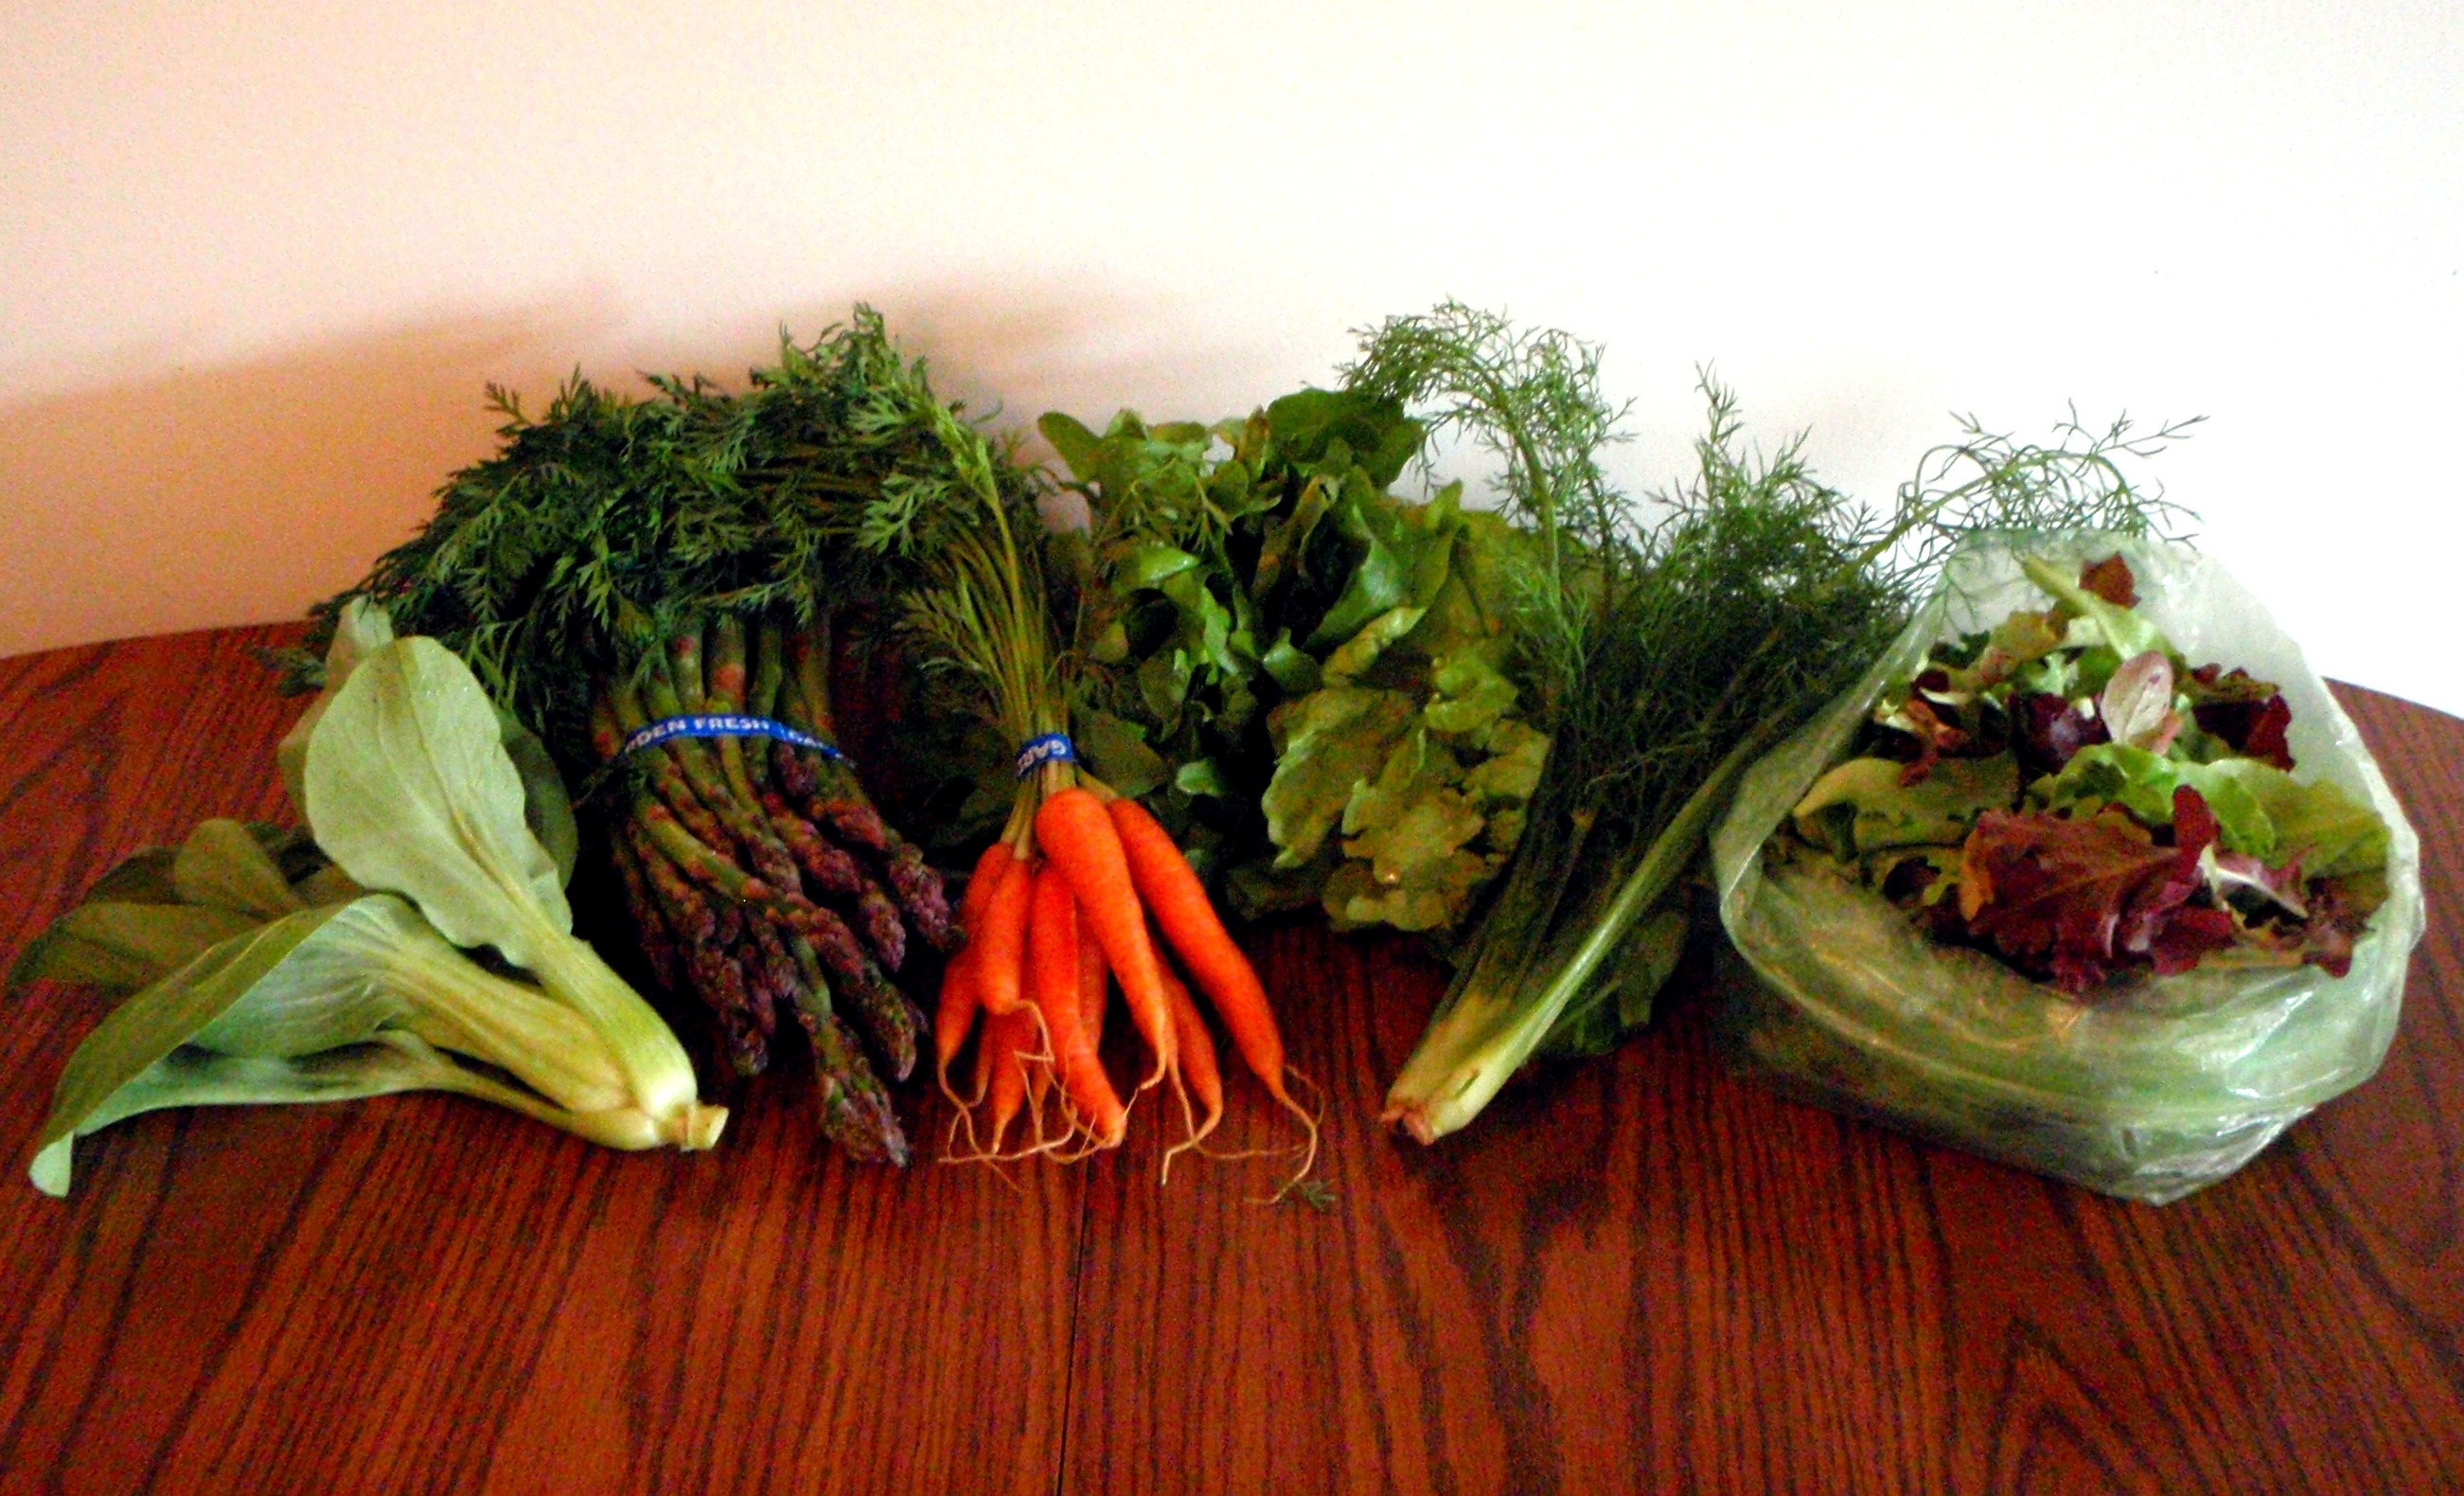 Our CSA: Wrappin' Up Week 2